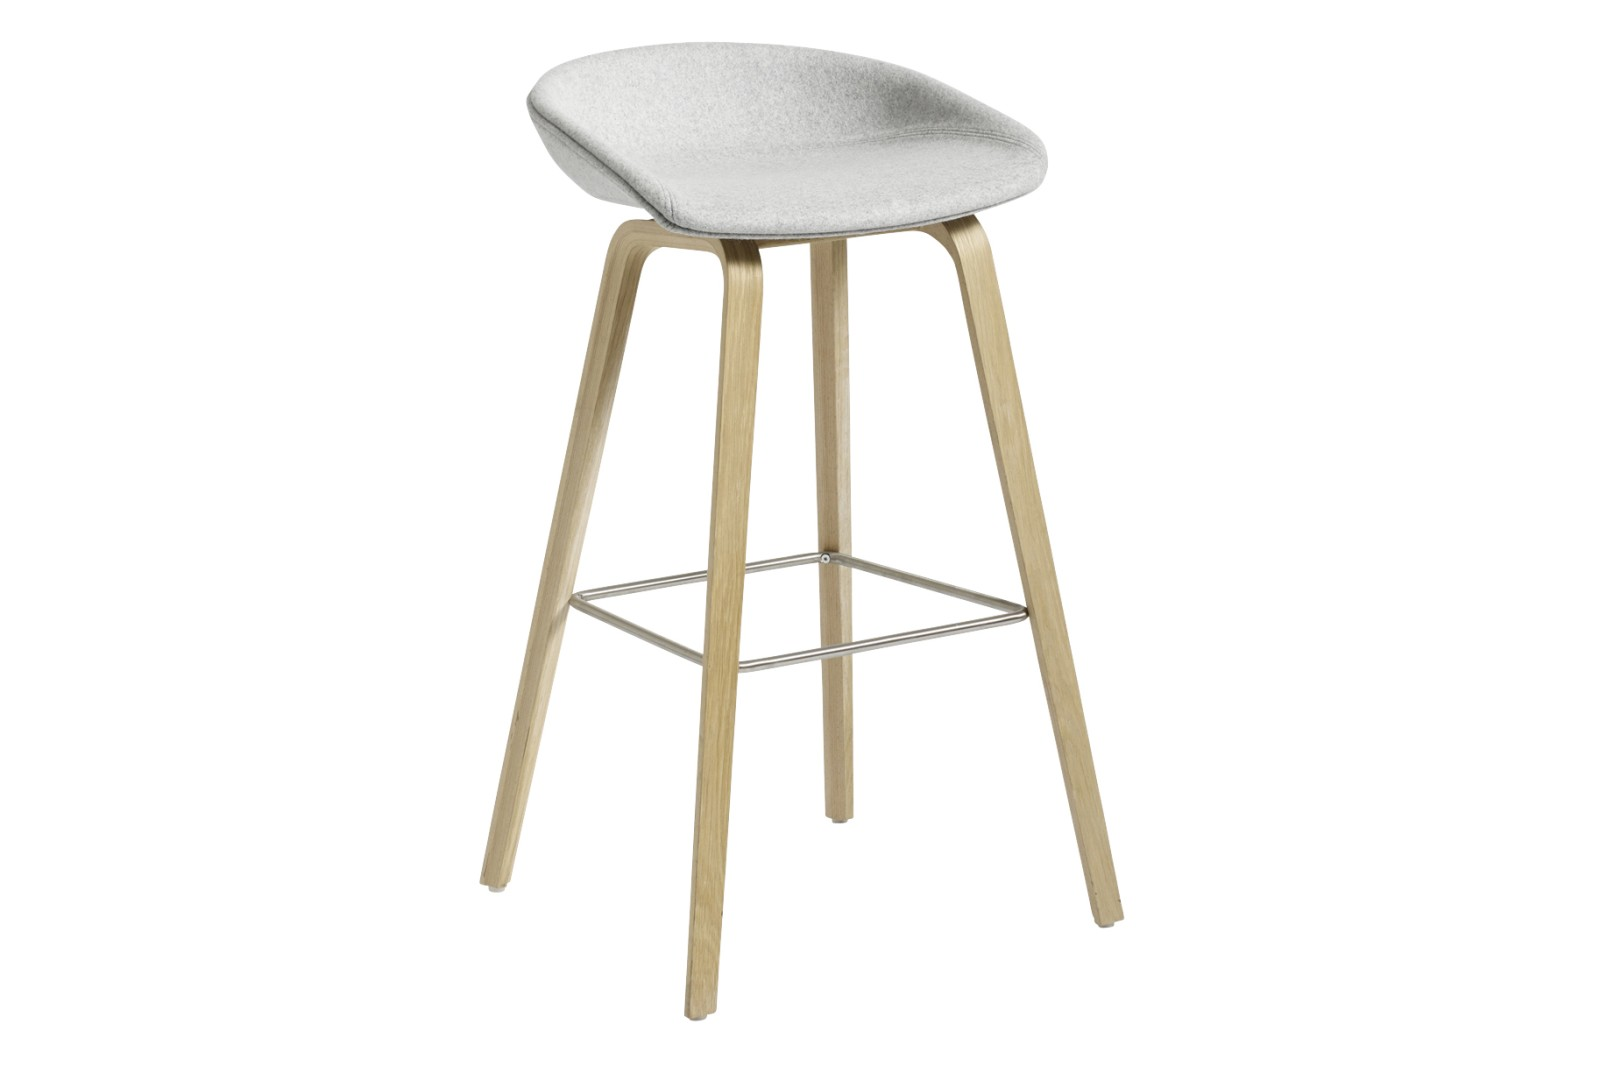 AAS 33 High Bar Stool Fabric Group 3, Wood Soaped Oak, Metal Stainless Steel